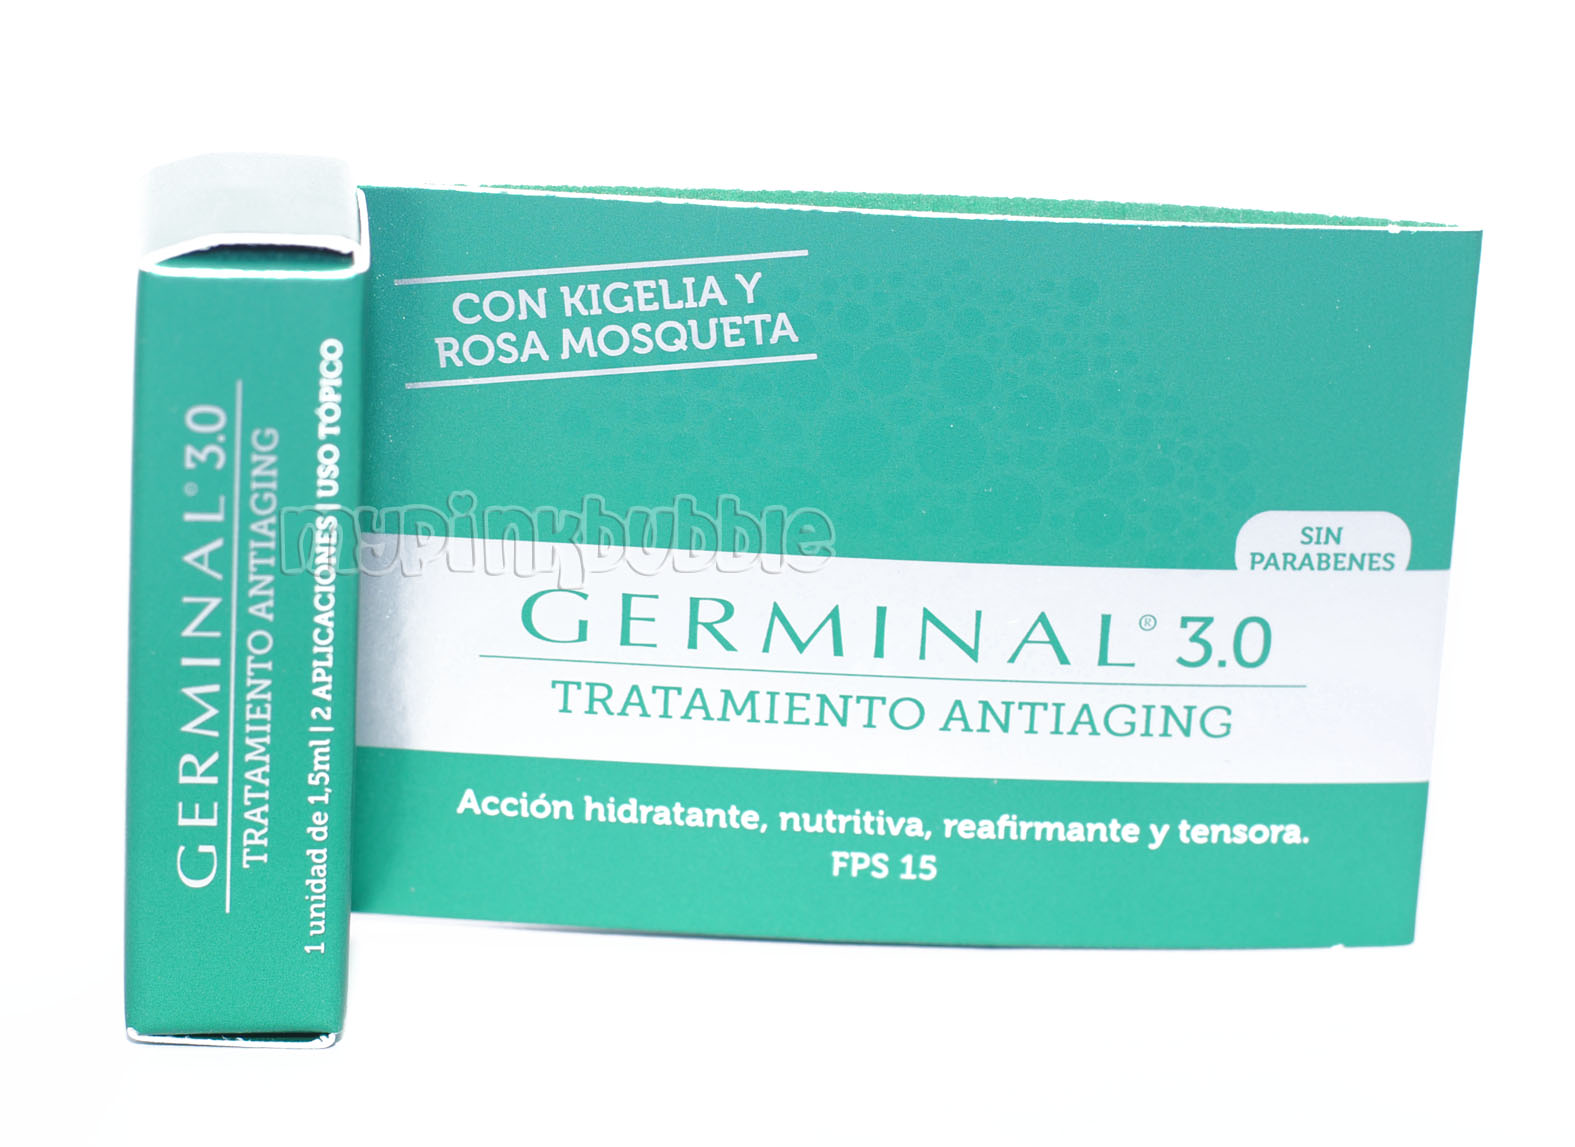 Germinal 3.0 tratamiento antiging